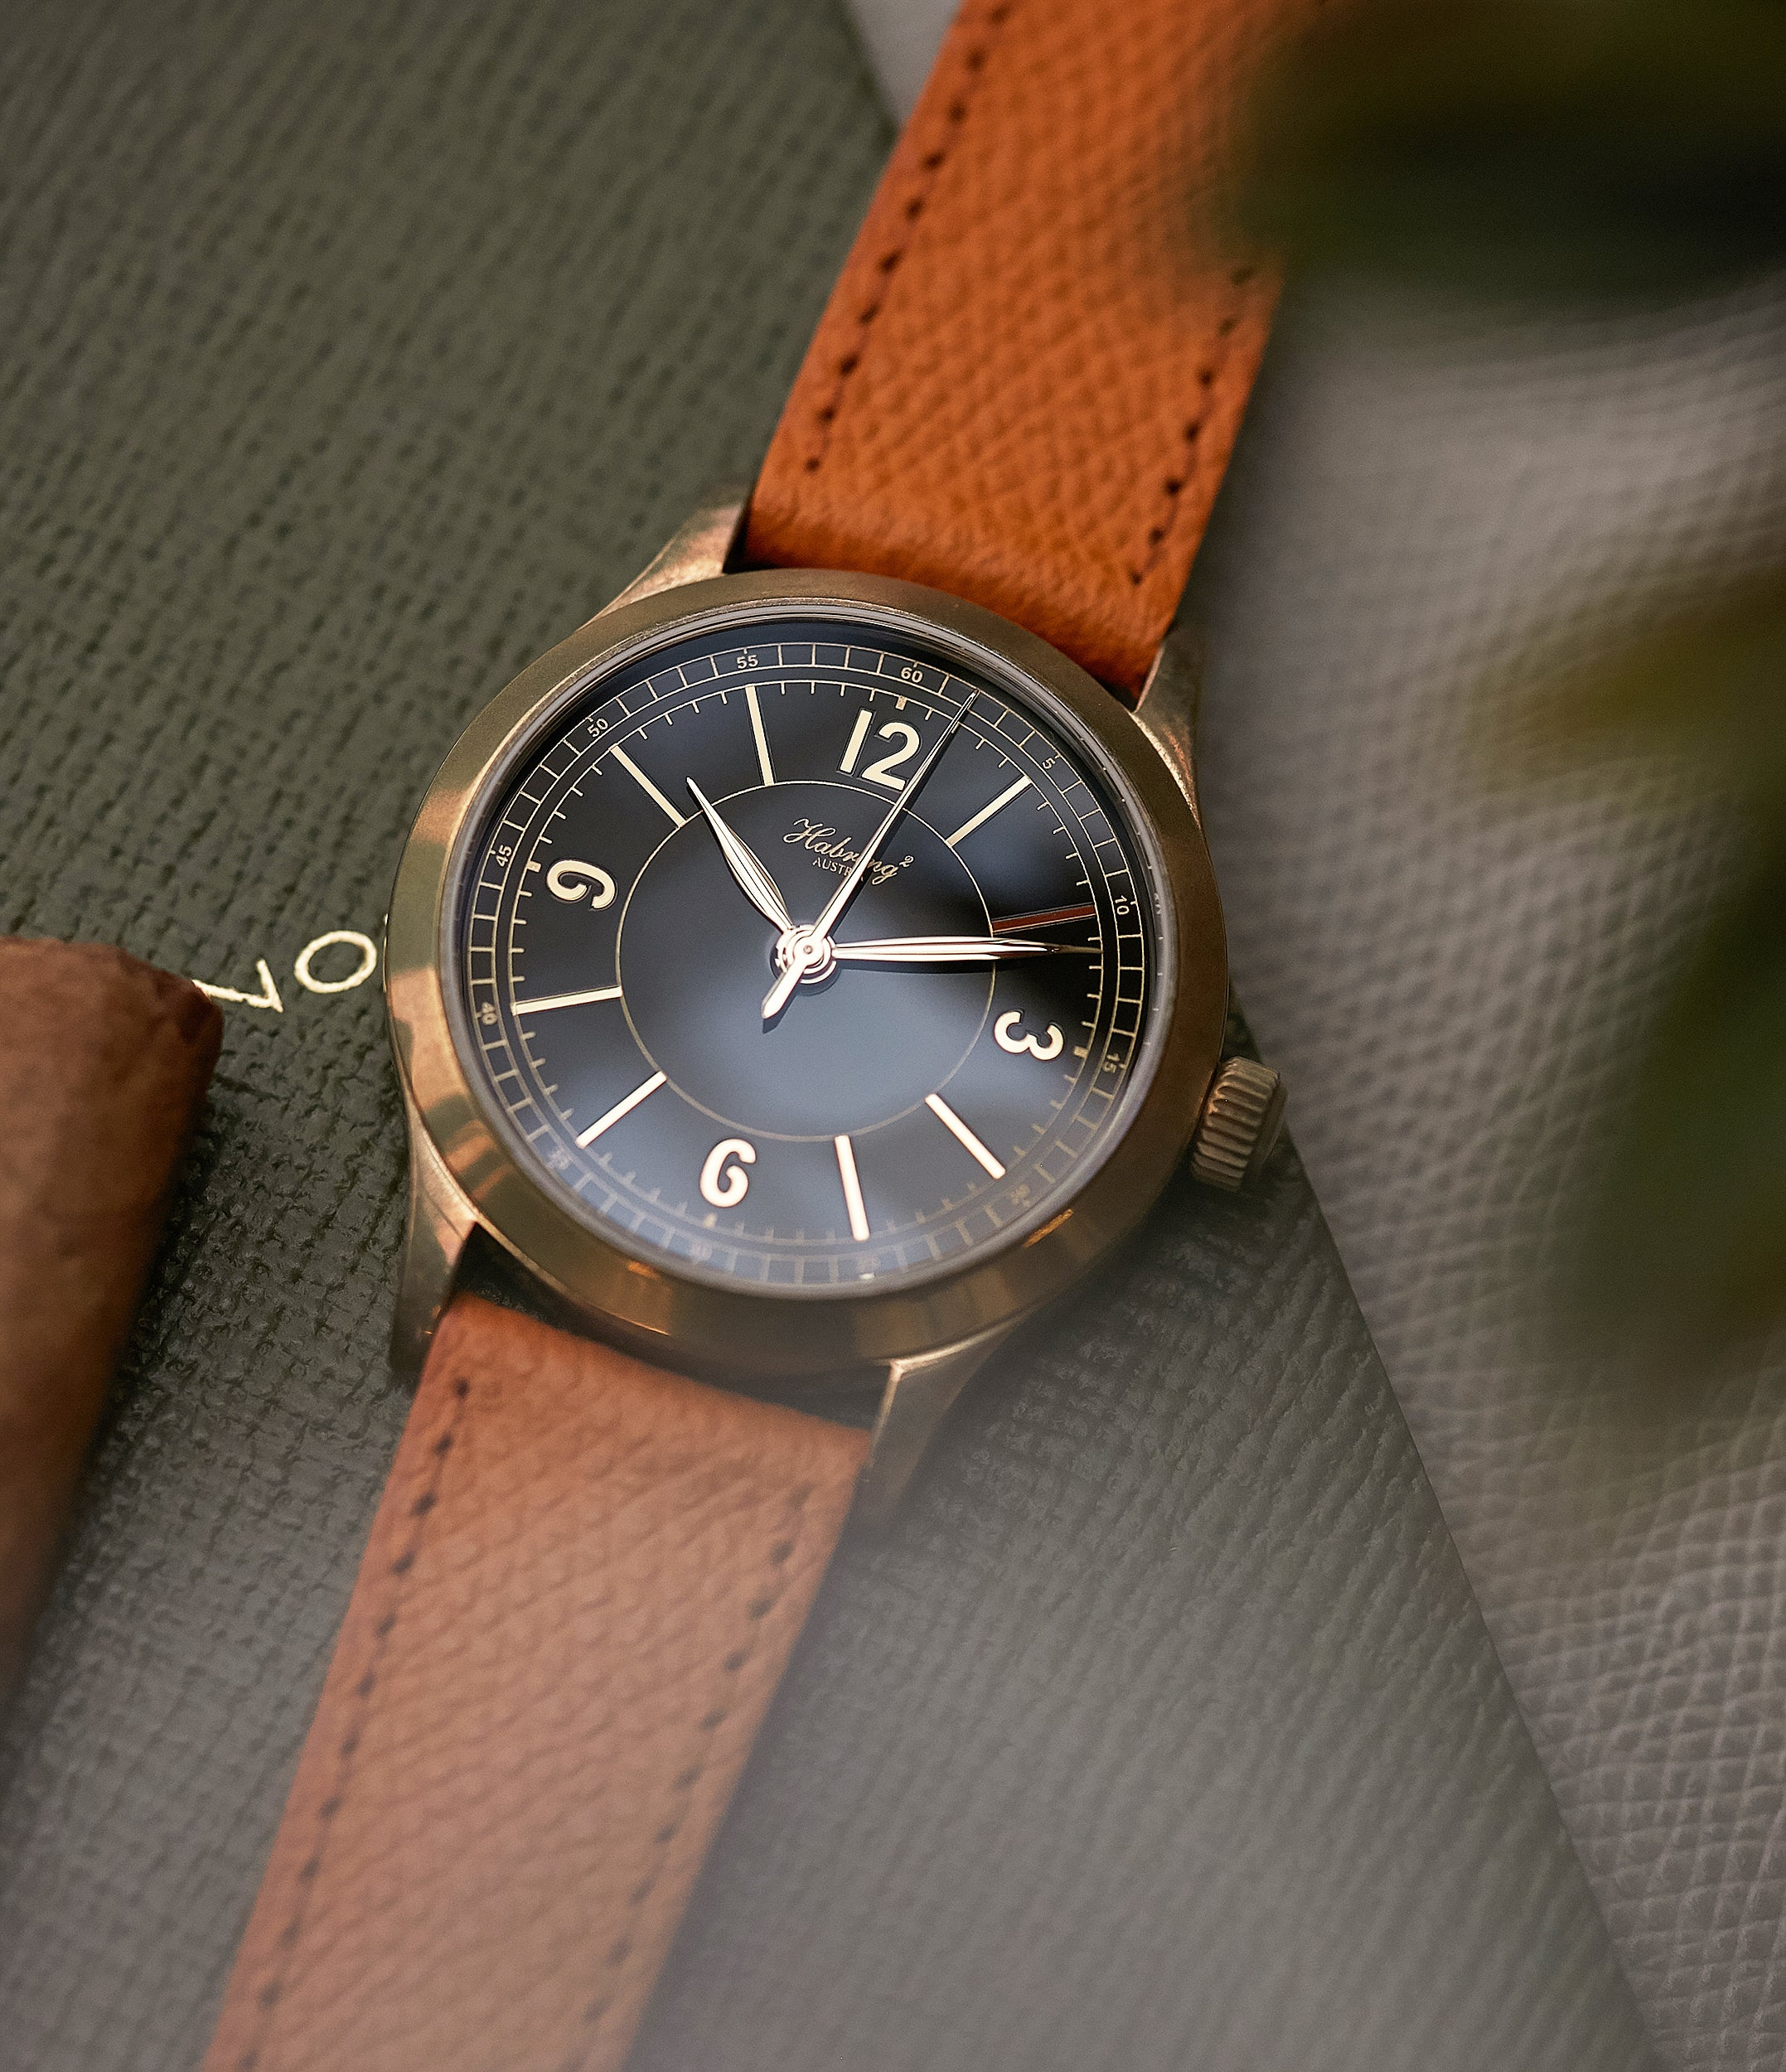 William Massena LAB Habring2 Erwin LAB 01 Limited Edition bronze independent watchmaker dress watch for sale online at A Collected Man London UK rare watches